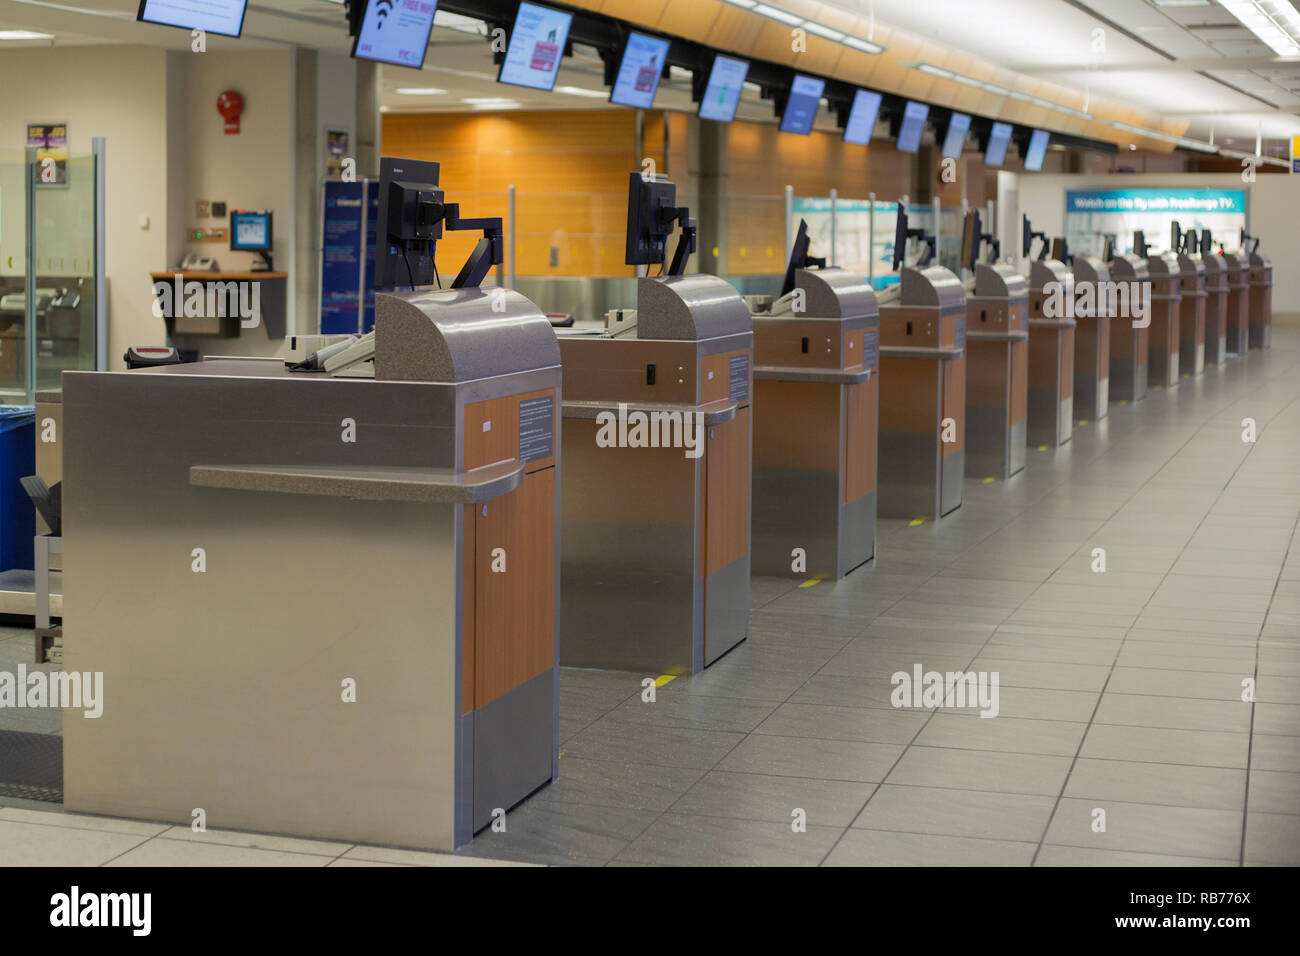 Row of check-in counters at the Calgary International Airport - Stock Image